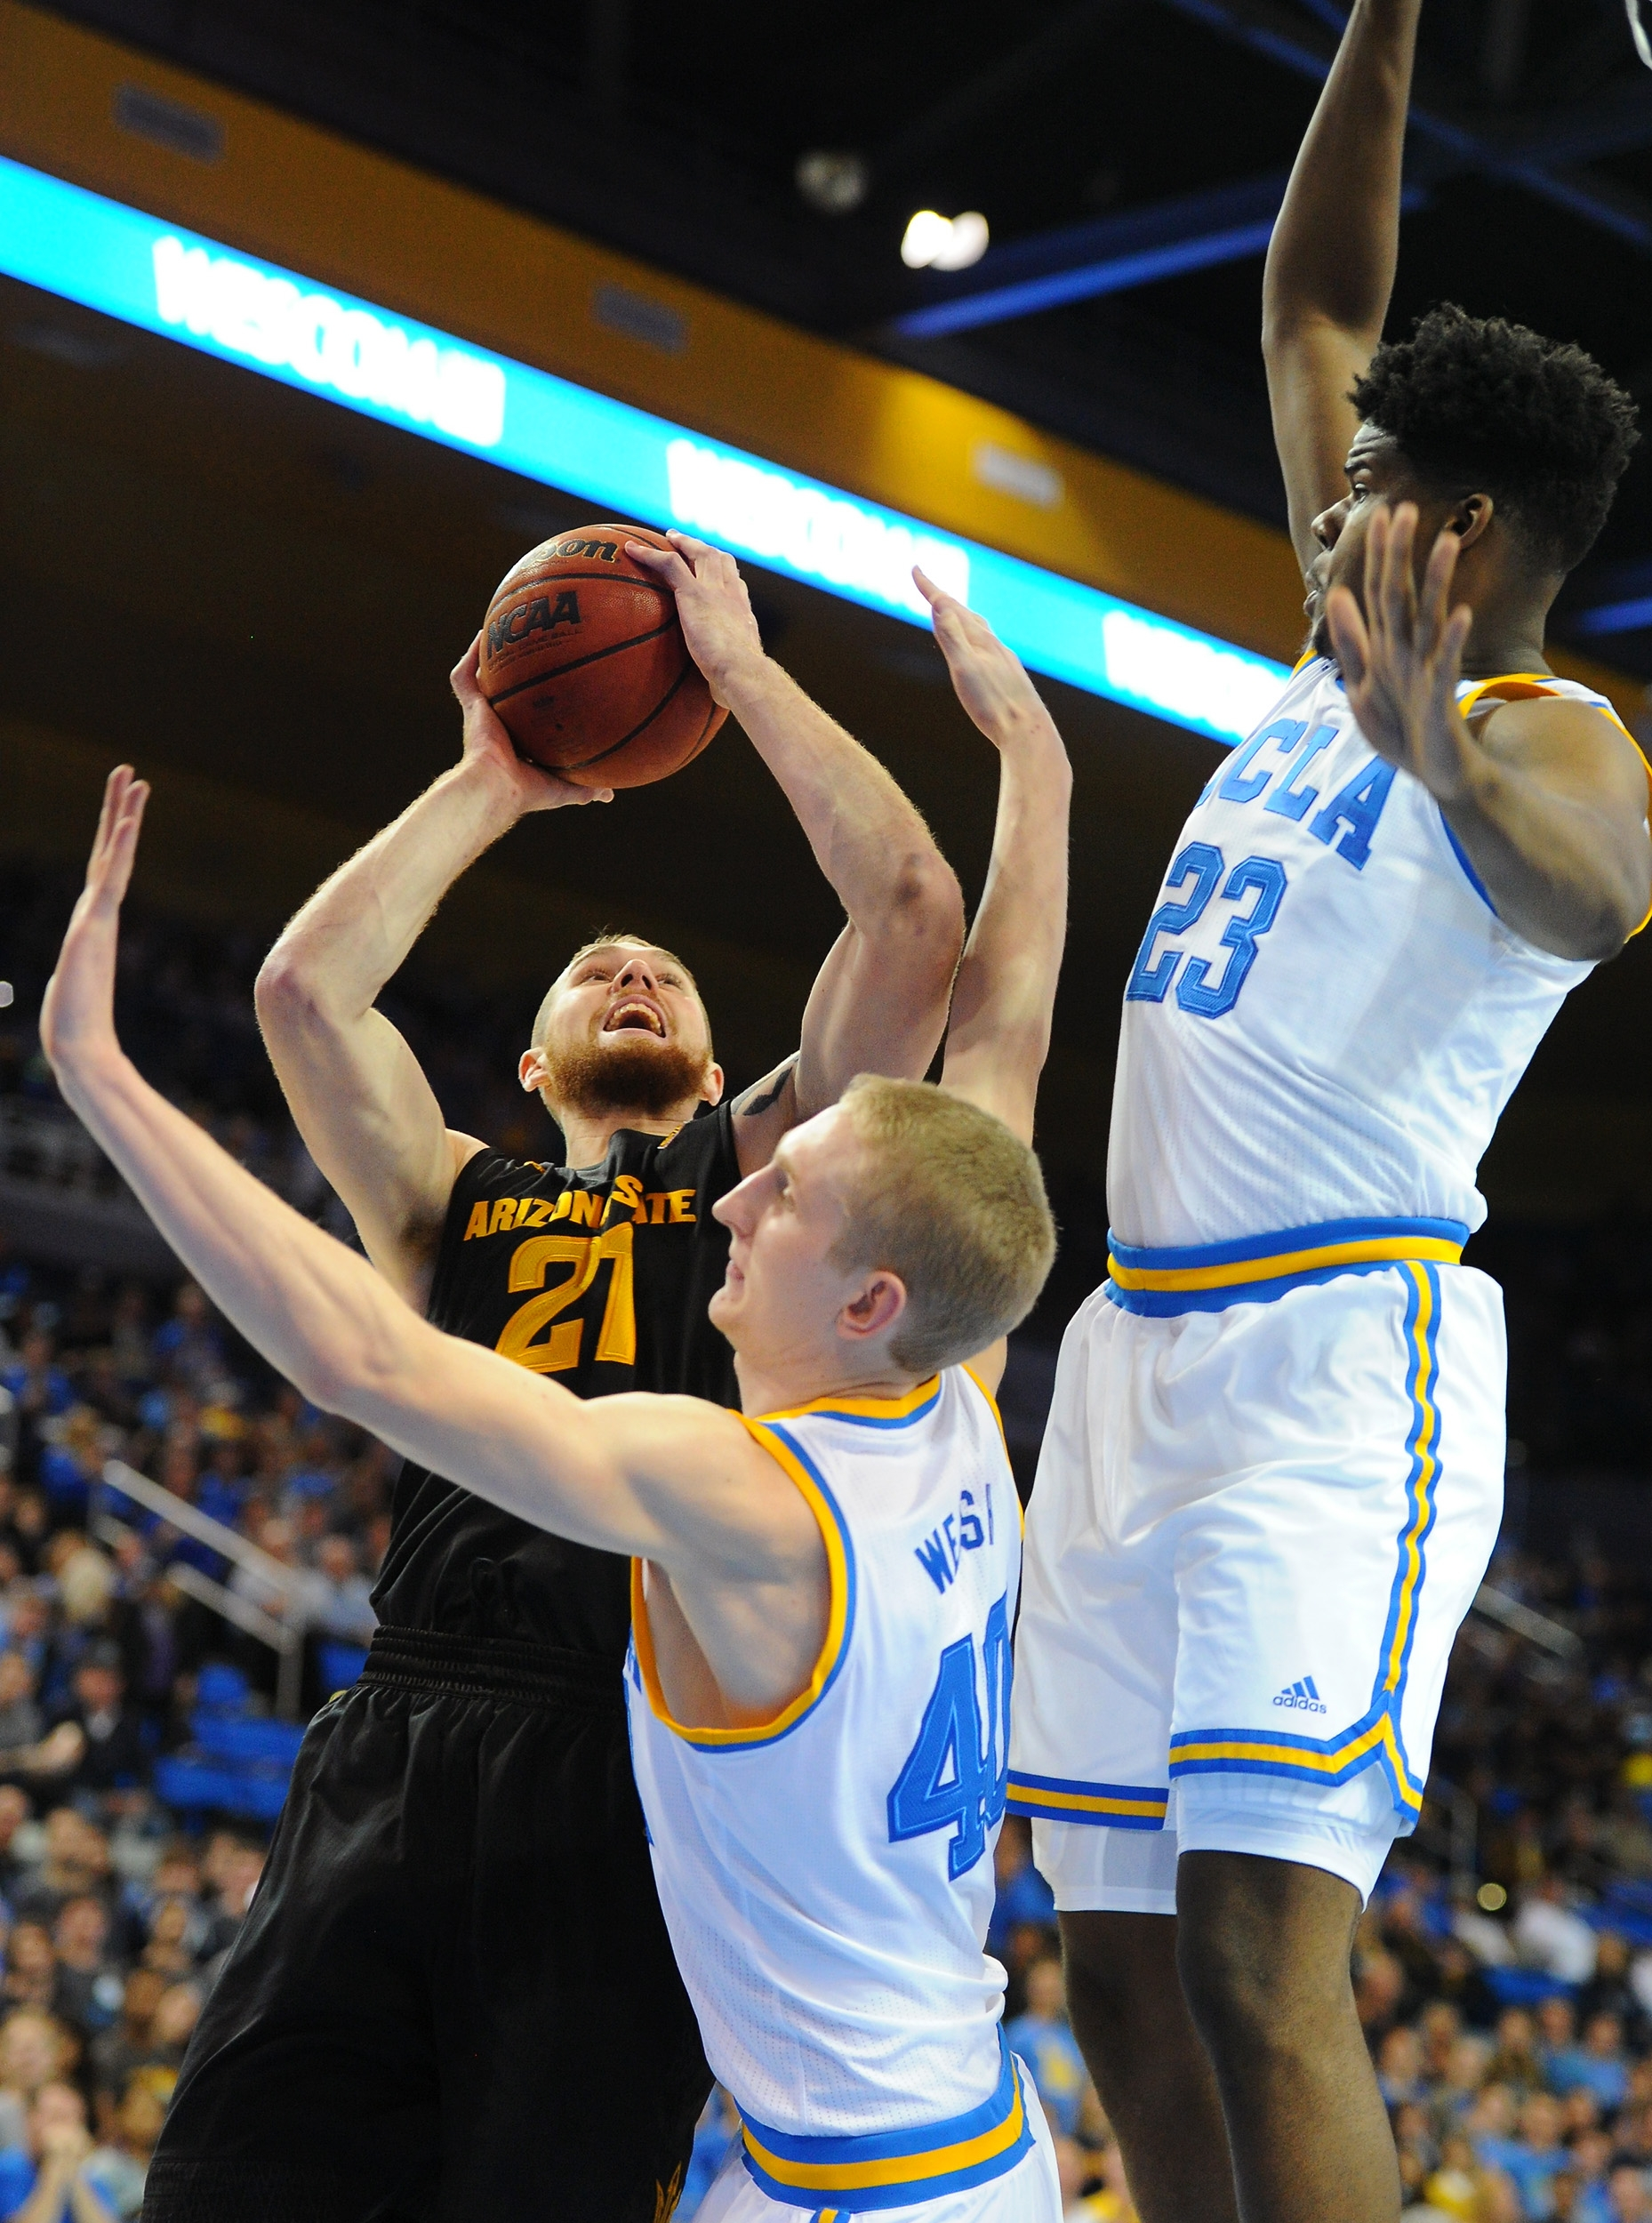 Arizona State's Eric Jacobsen (21) goes to the basket against UCLA's Thomas Welsh, bottom left, and Tony Parker (23) in the first half of an NCAA college basketball game in Los Angeles, Saturday, Jan. 9, 2016. (AP Photo/Michael Owen Baker)